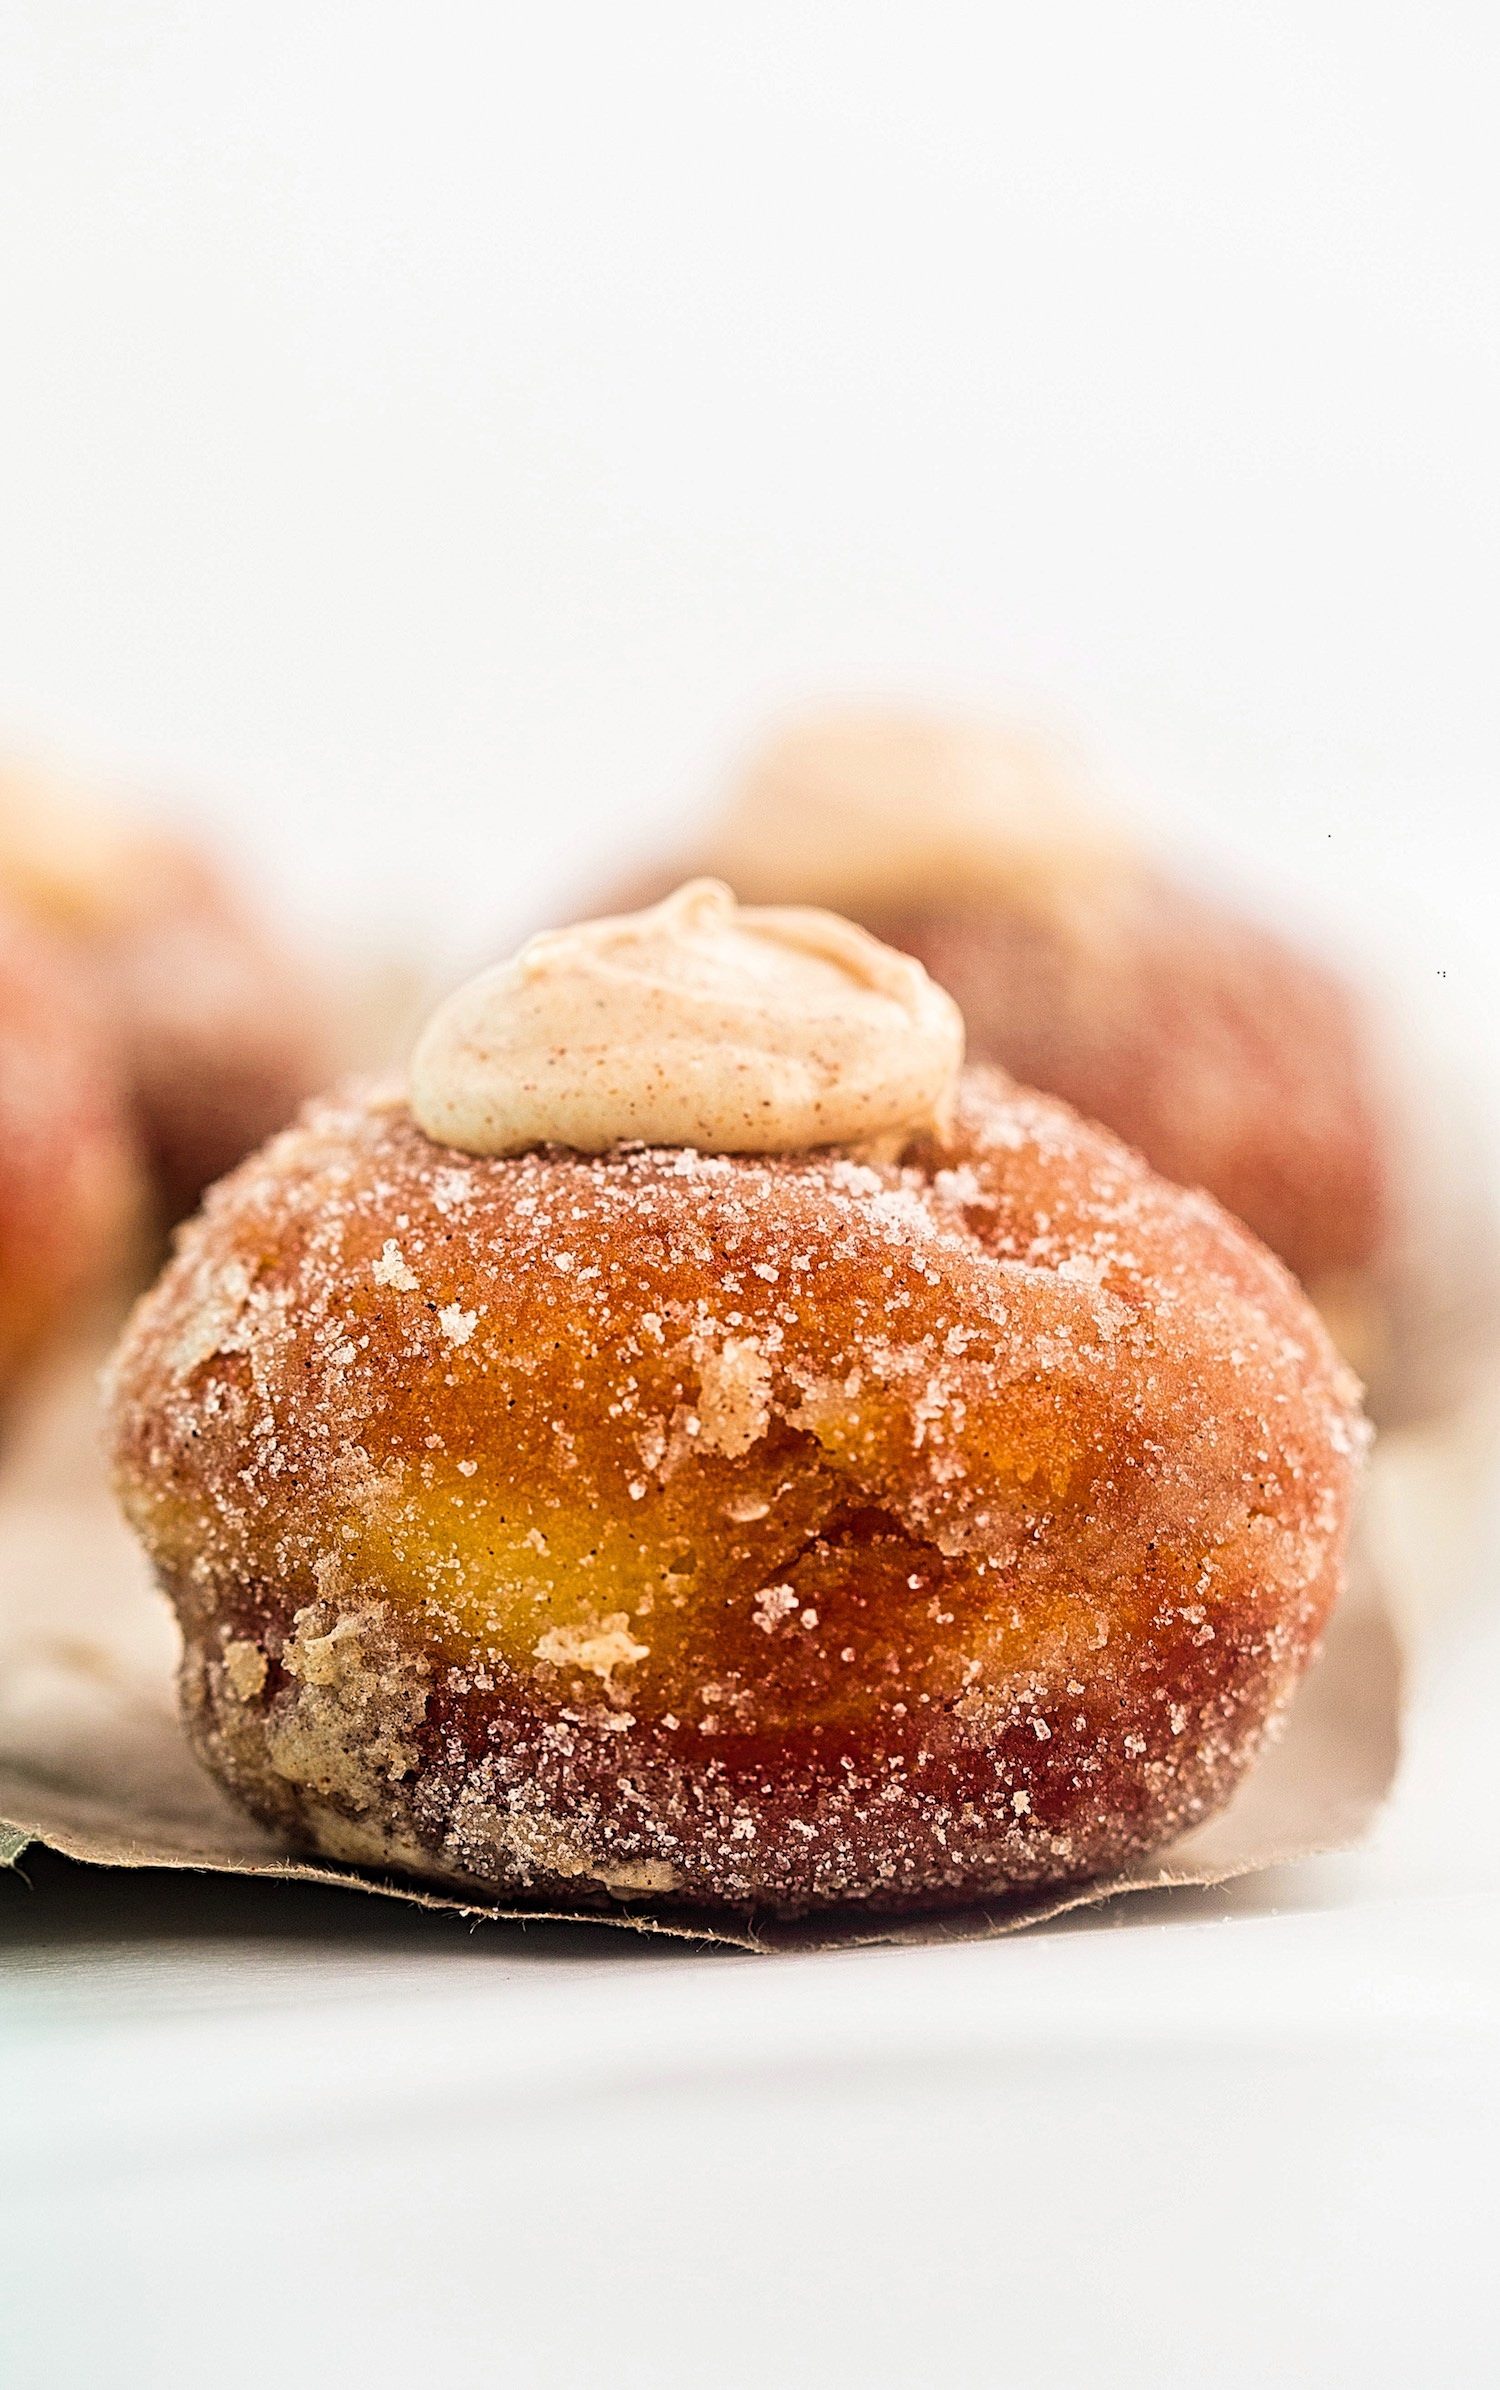 Fried Cinnamon Roll Donuts: perfect fried donuts filled with a cinnamon cheesecake filling before being rolled in hot butter and coated with a cinnamon, sugar mixture. | TrufflesandTrends.com